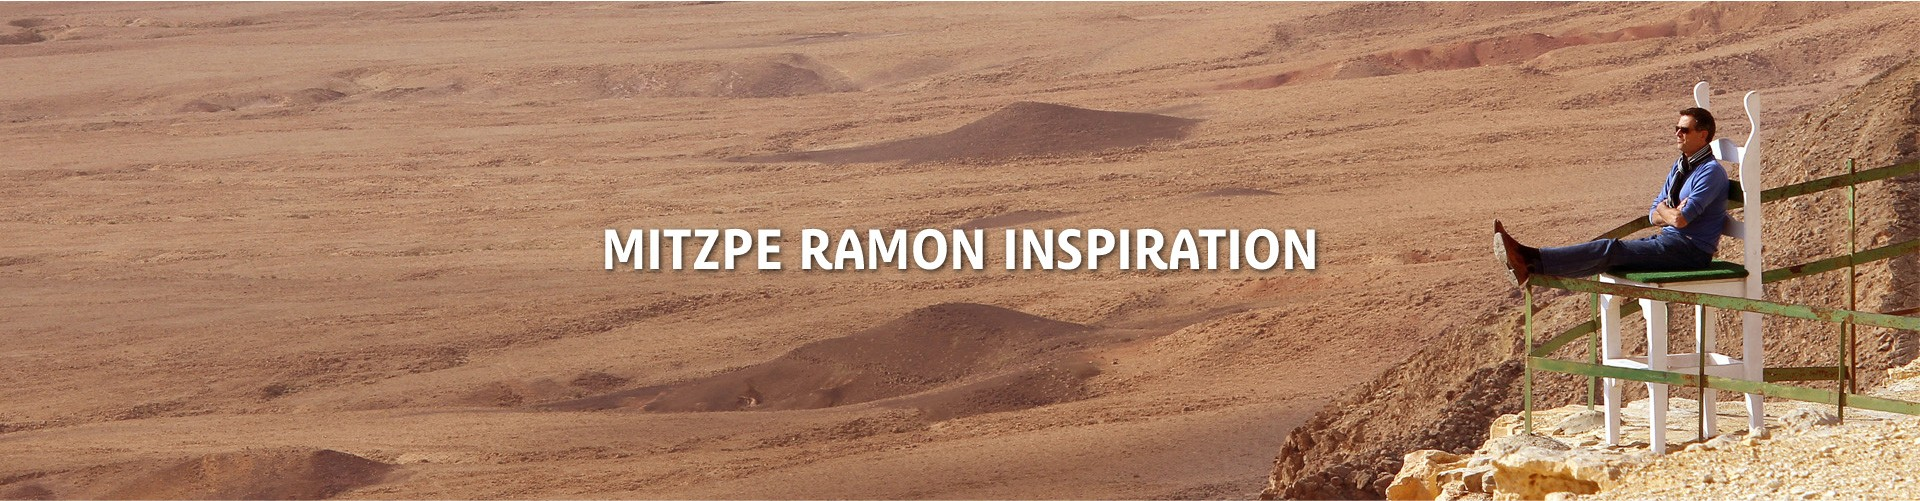 MITZPE RAMON INSPIRATION